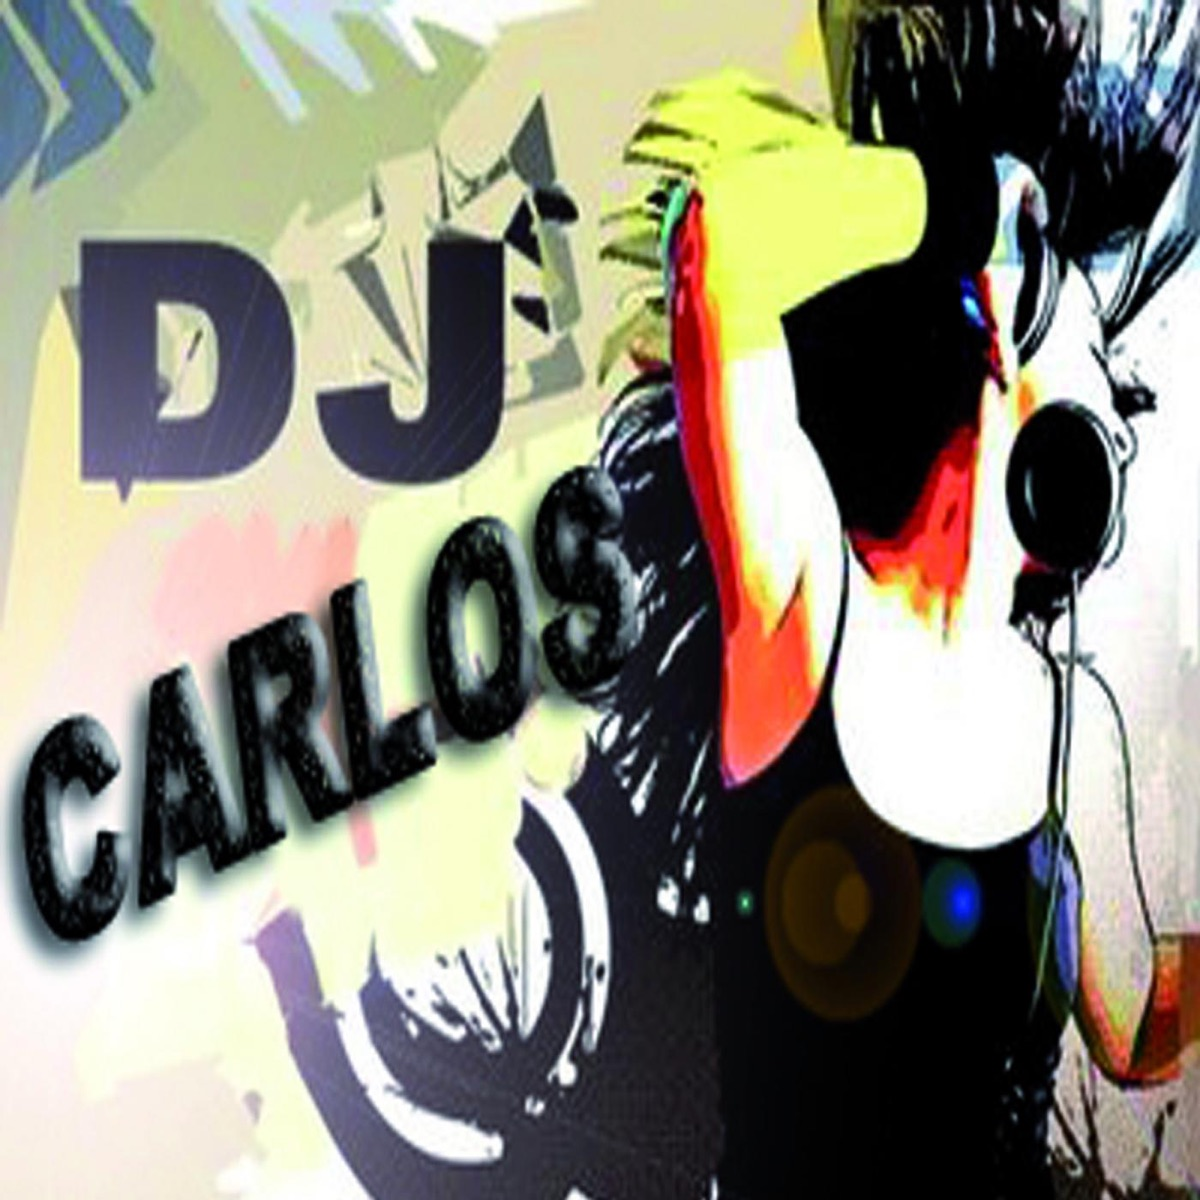 Podcast de printemps By Dj carlos